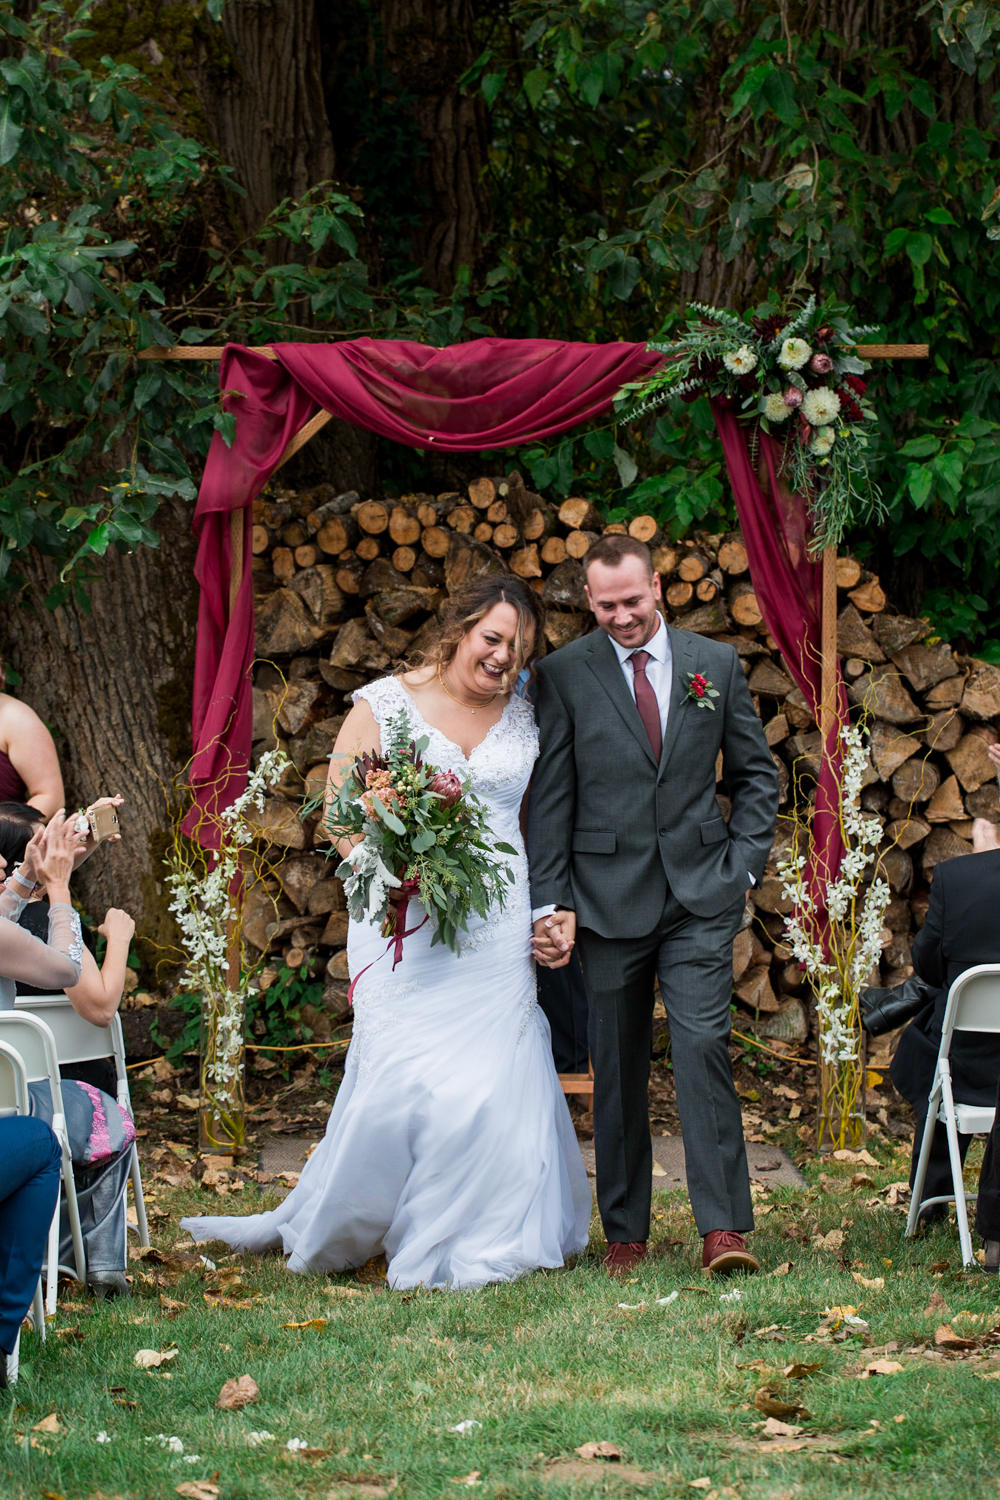 Carnation-Tree-Farm-Wedding-Photographer-4114.jpg